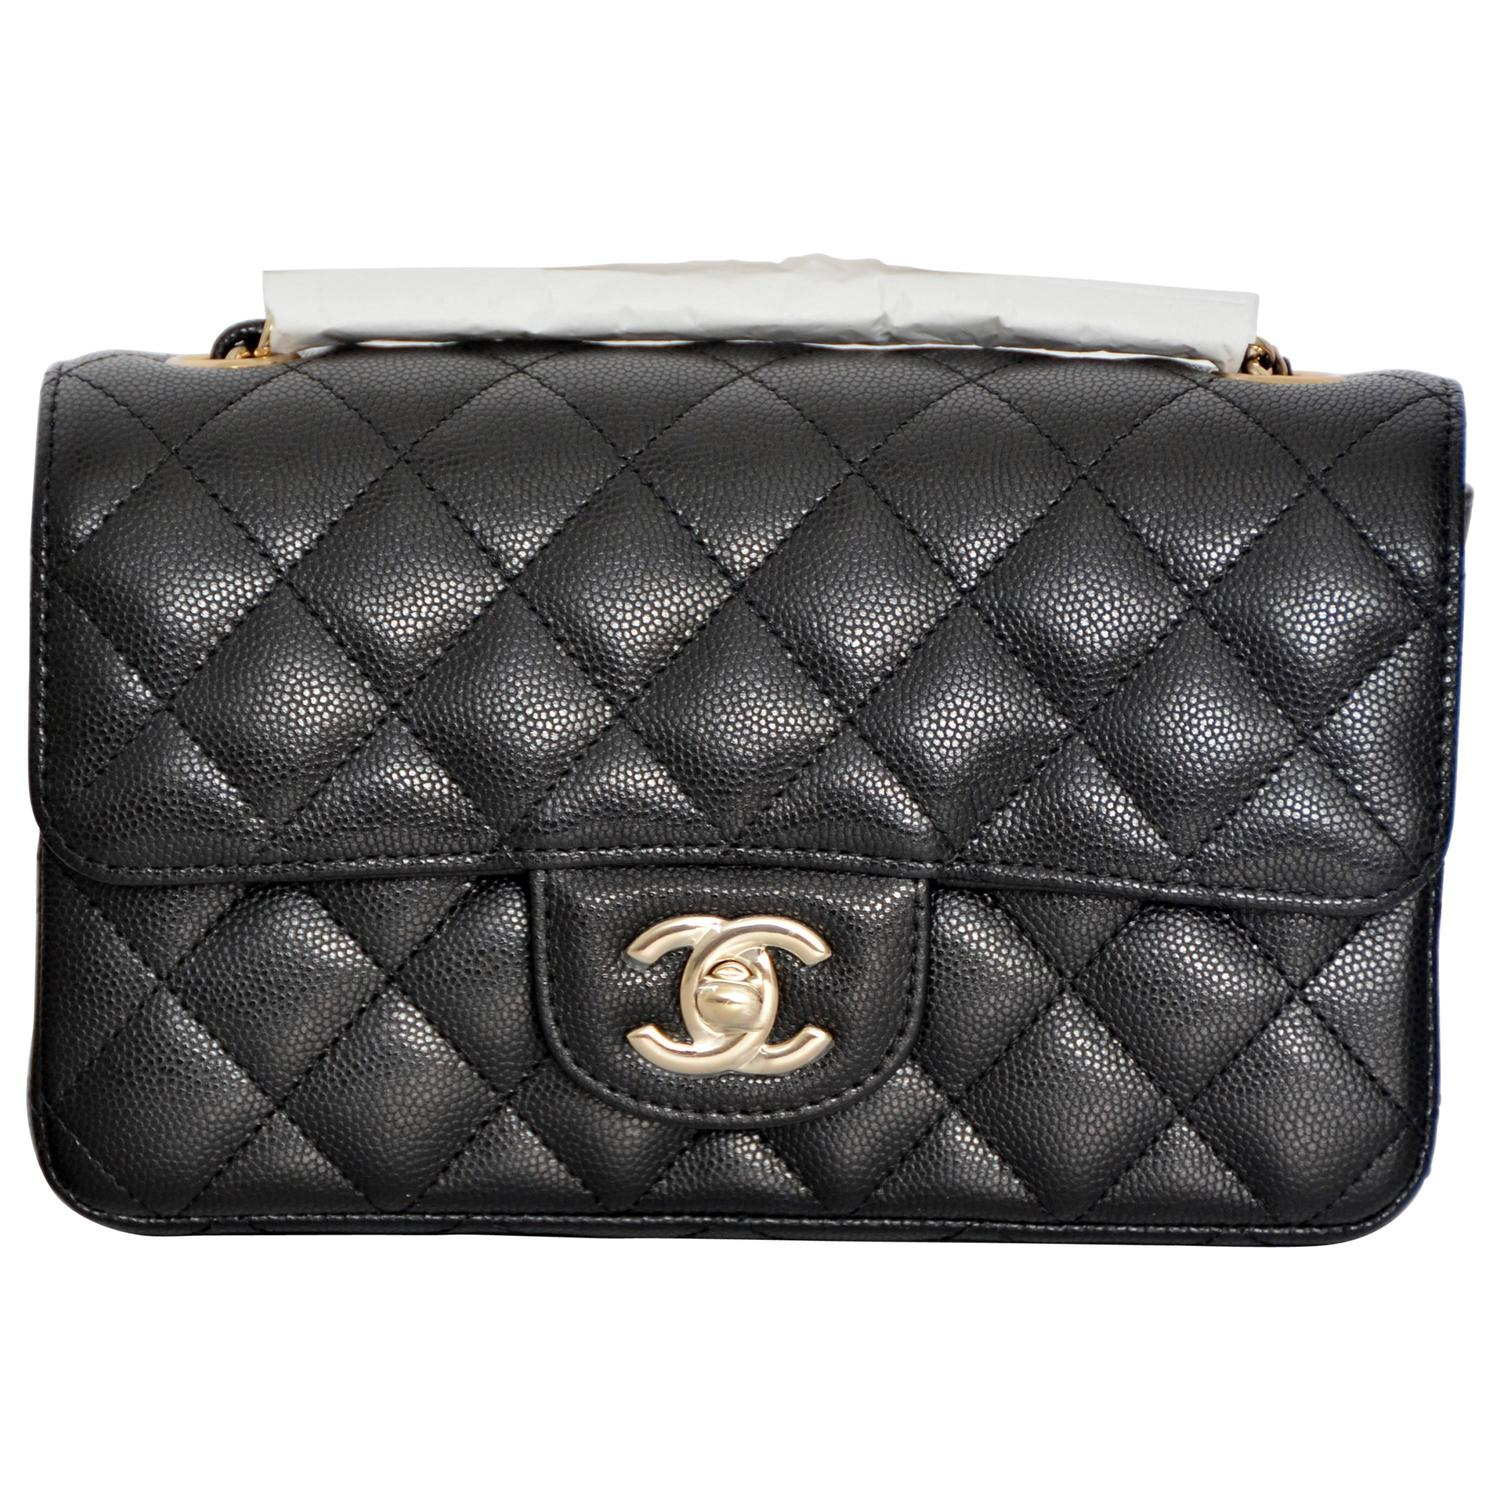 1250646ce643 CHANEL  17 Rectangle New Mini Black Caviar Light Gold Flap RARE SOLD OUT at  1stdibs